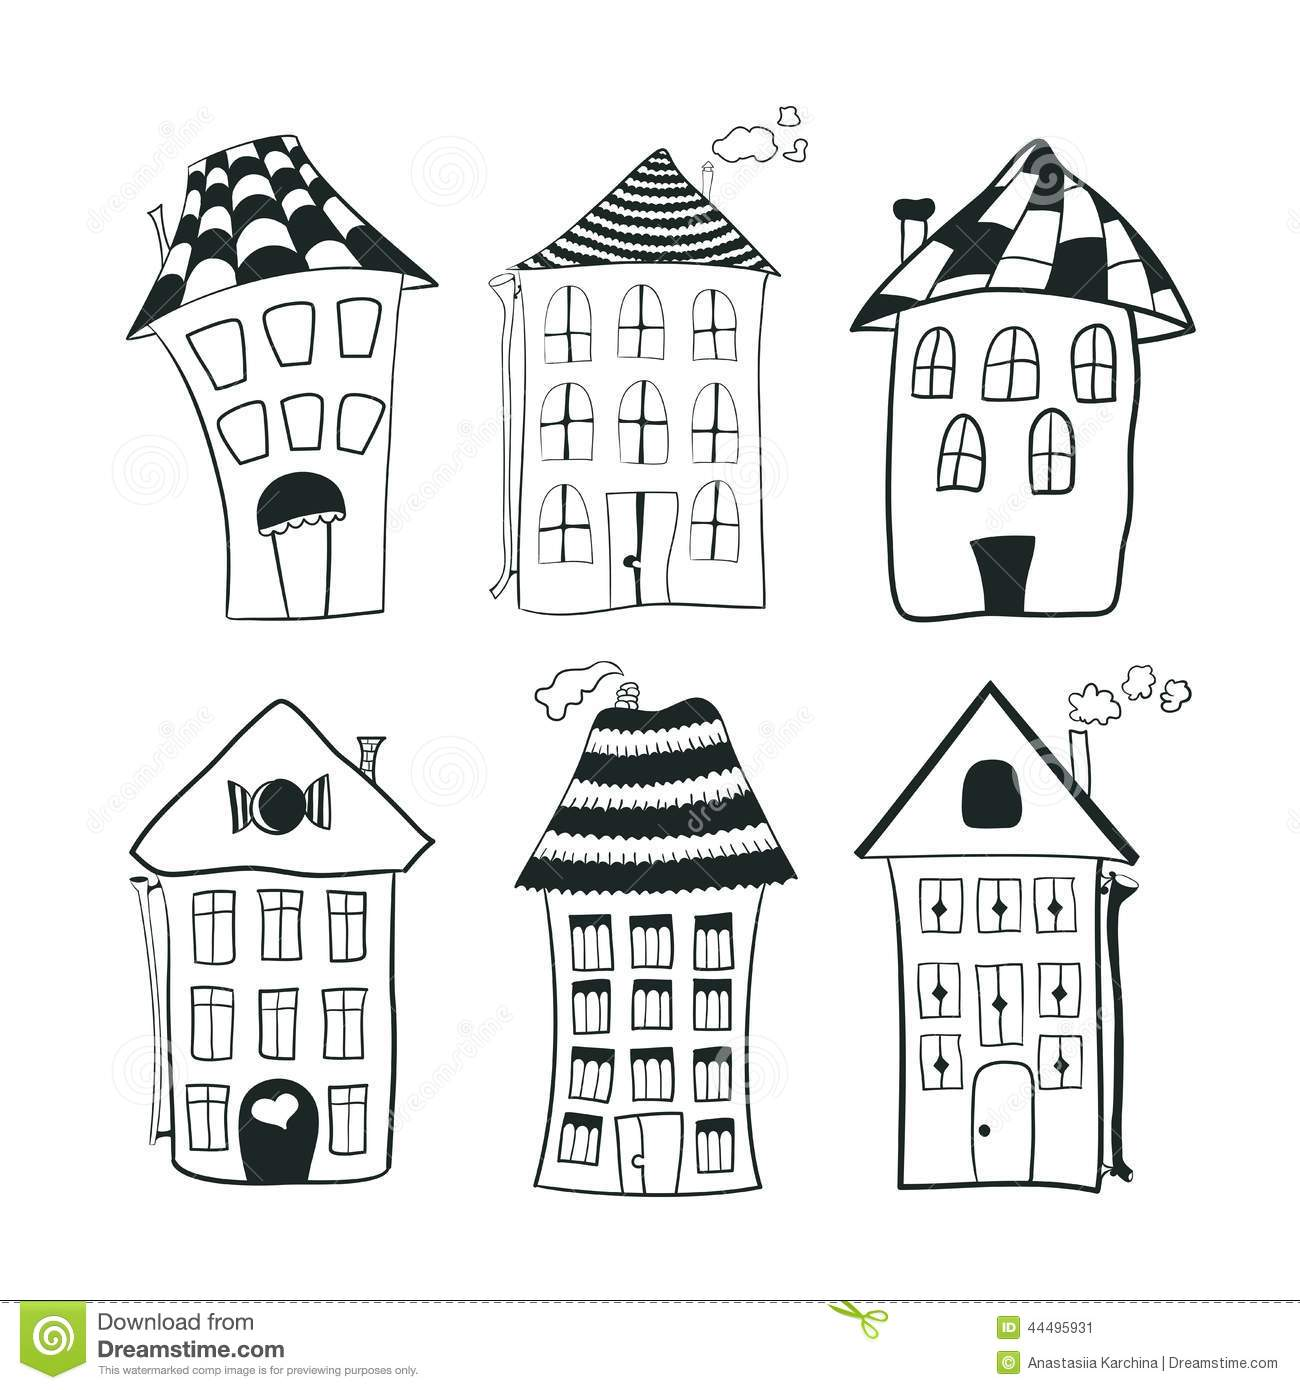 townhouse clipart black and white. royaltyfree vector download set sketch black and white outline houses townhouse clipart